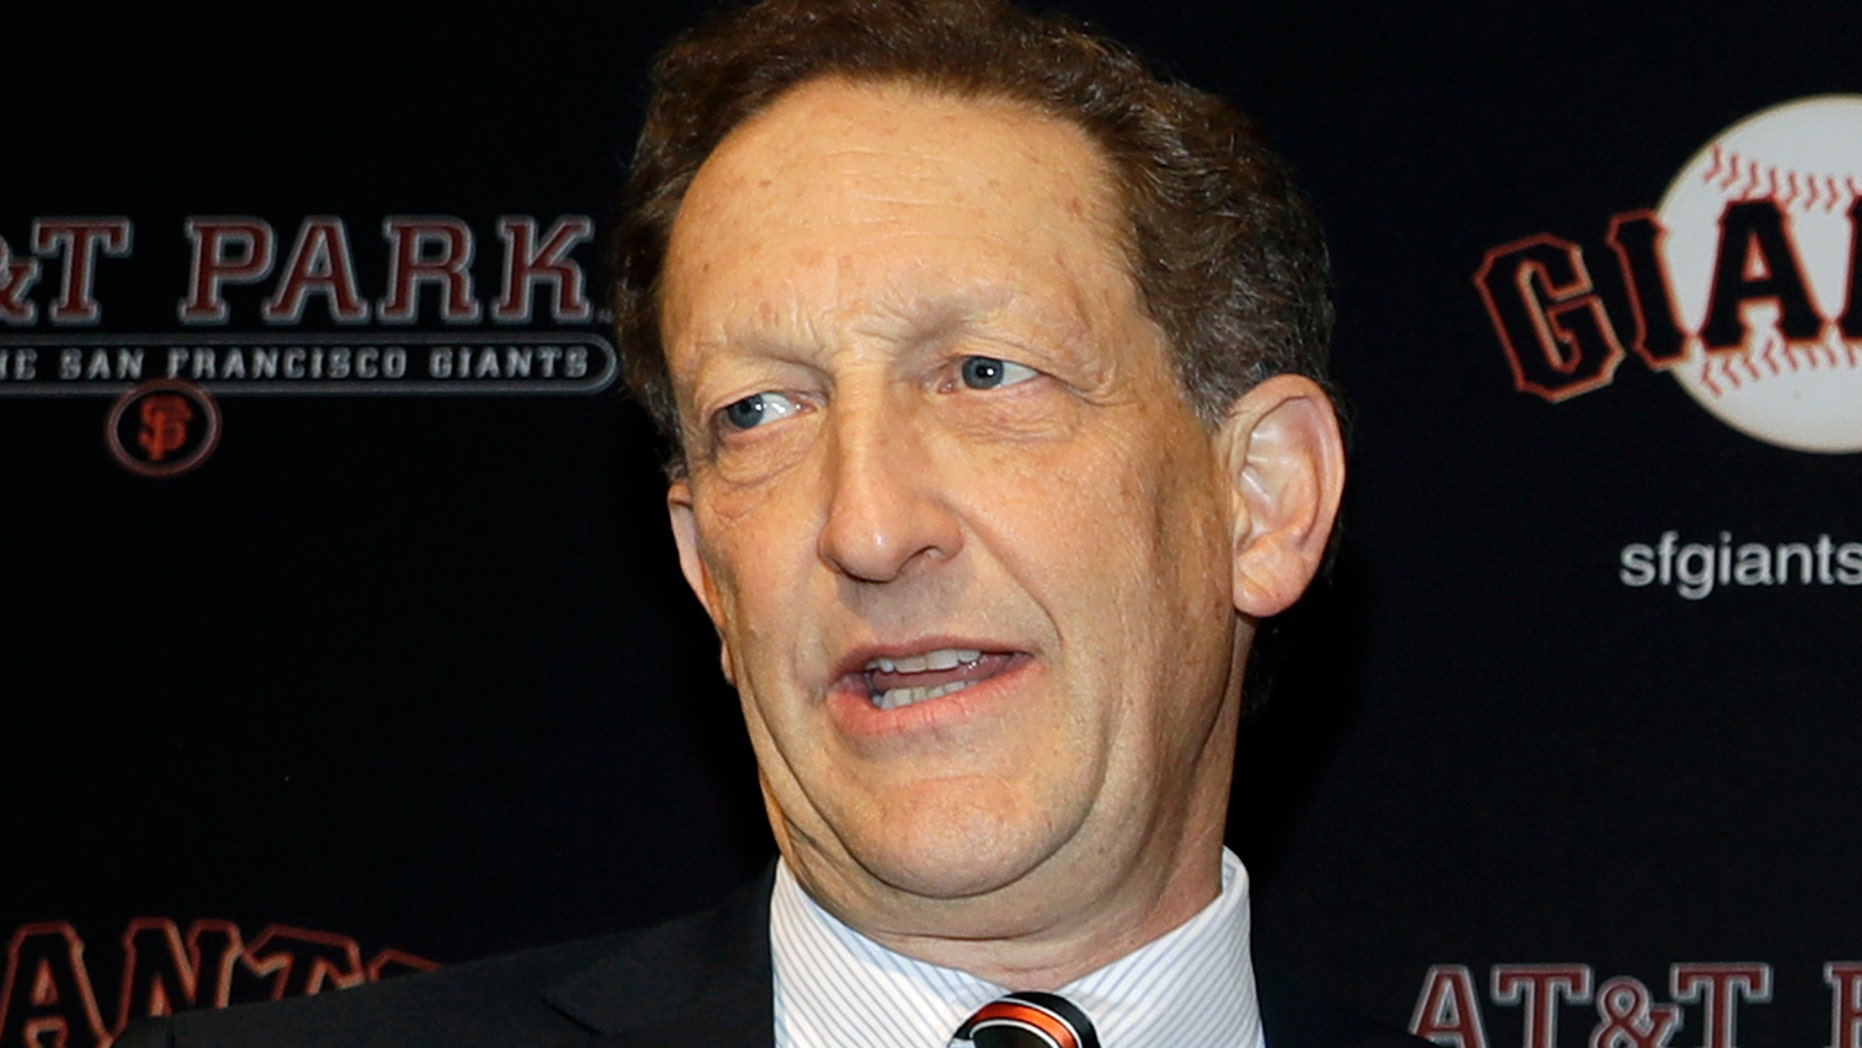 FILE - San Francisco Giants President and CEO Larry Baer will not face charges following a physical altercation with his wife earlier this month. (Associated Press)